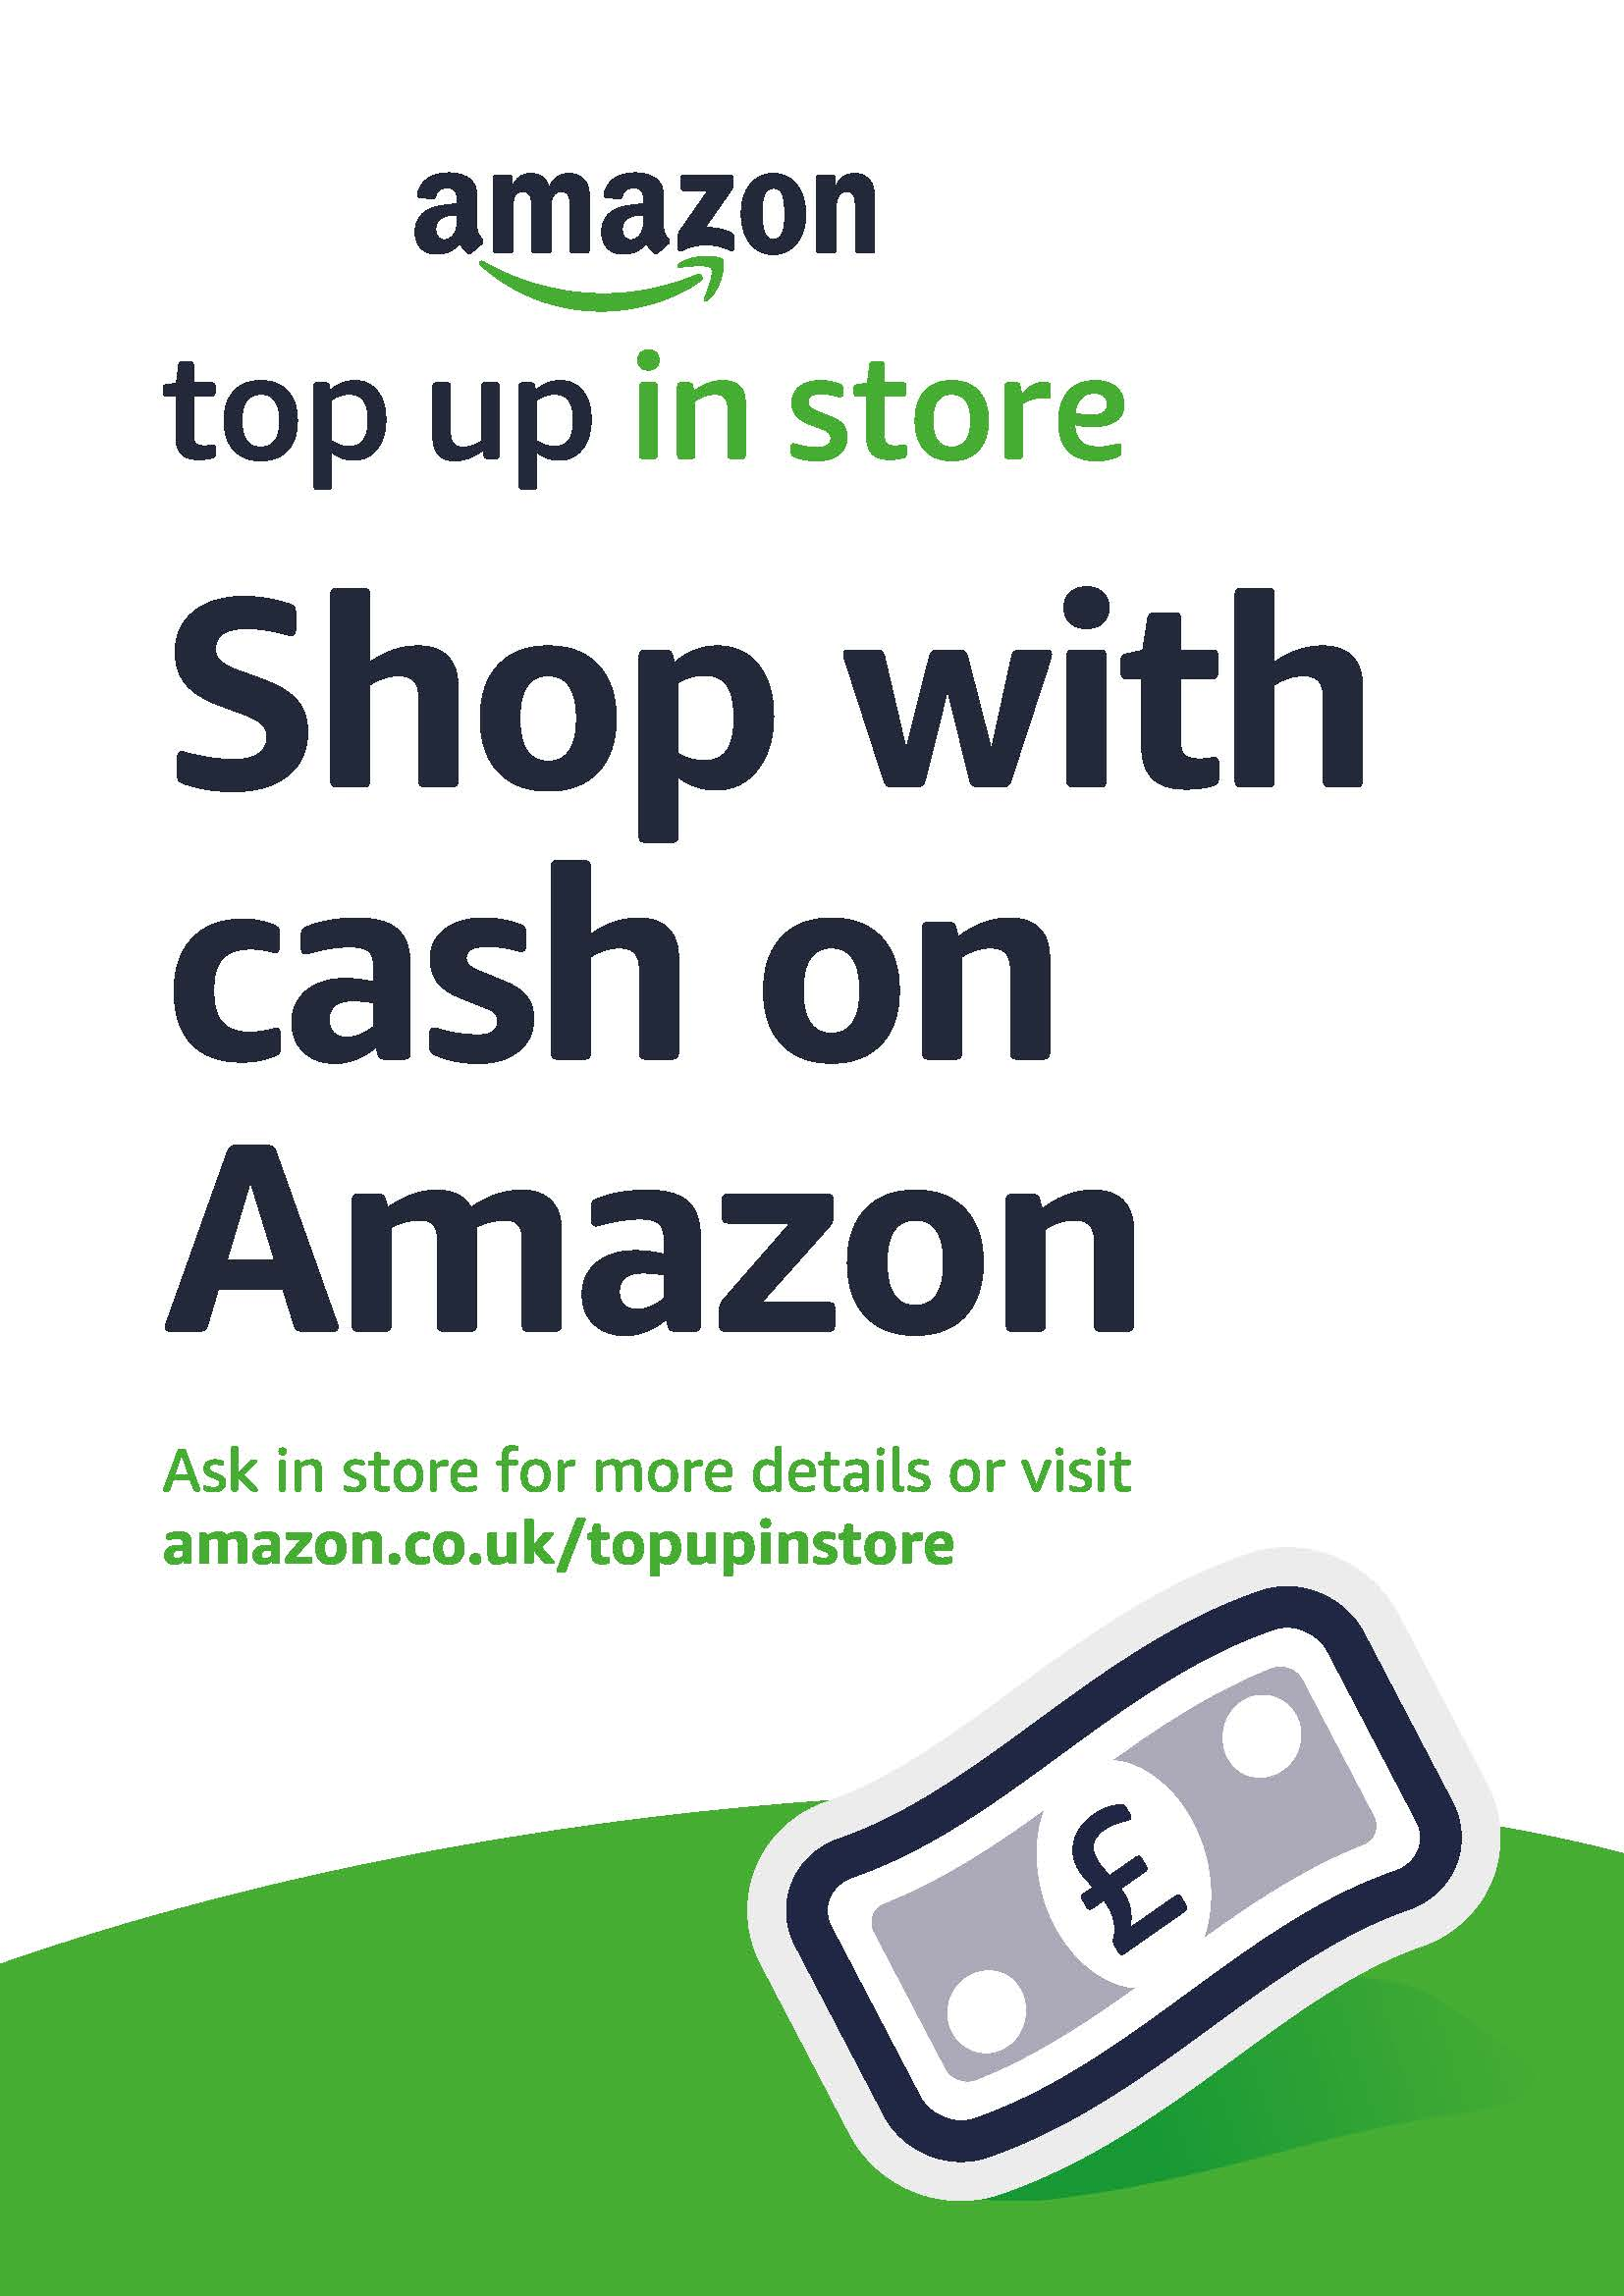 A4 Top Up in store Amazon Poster